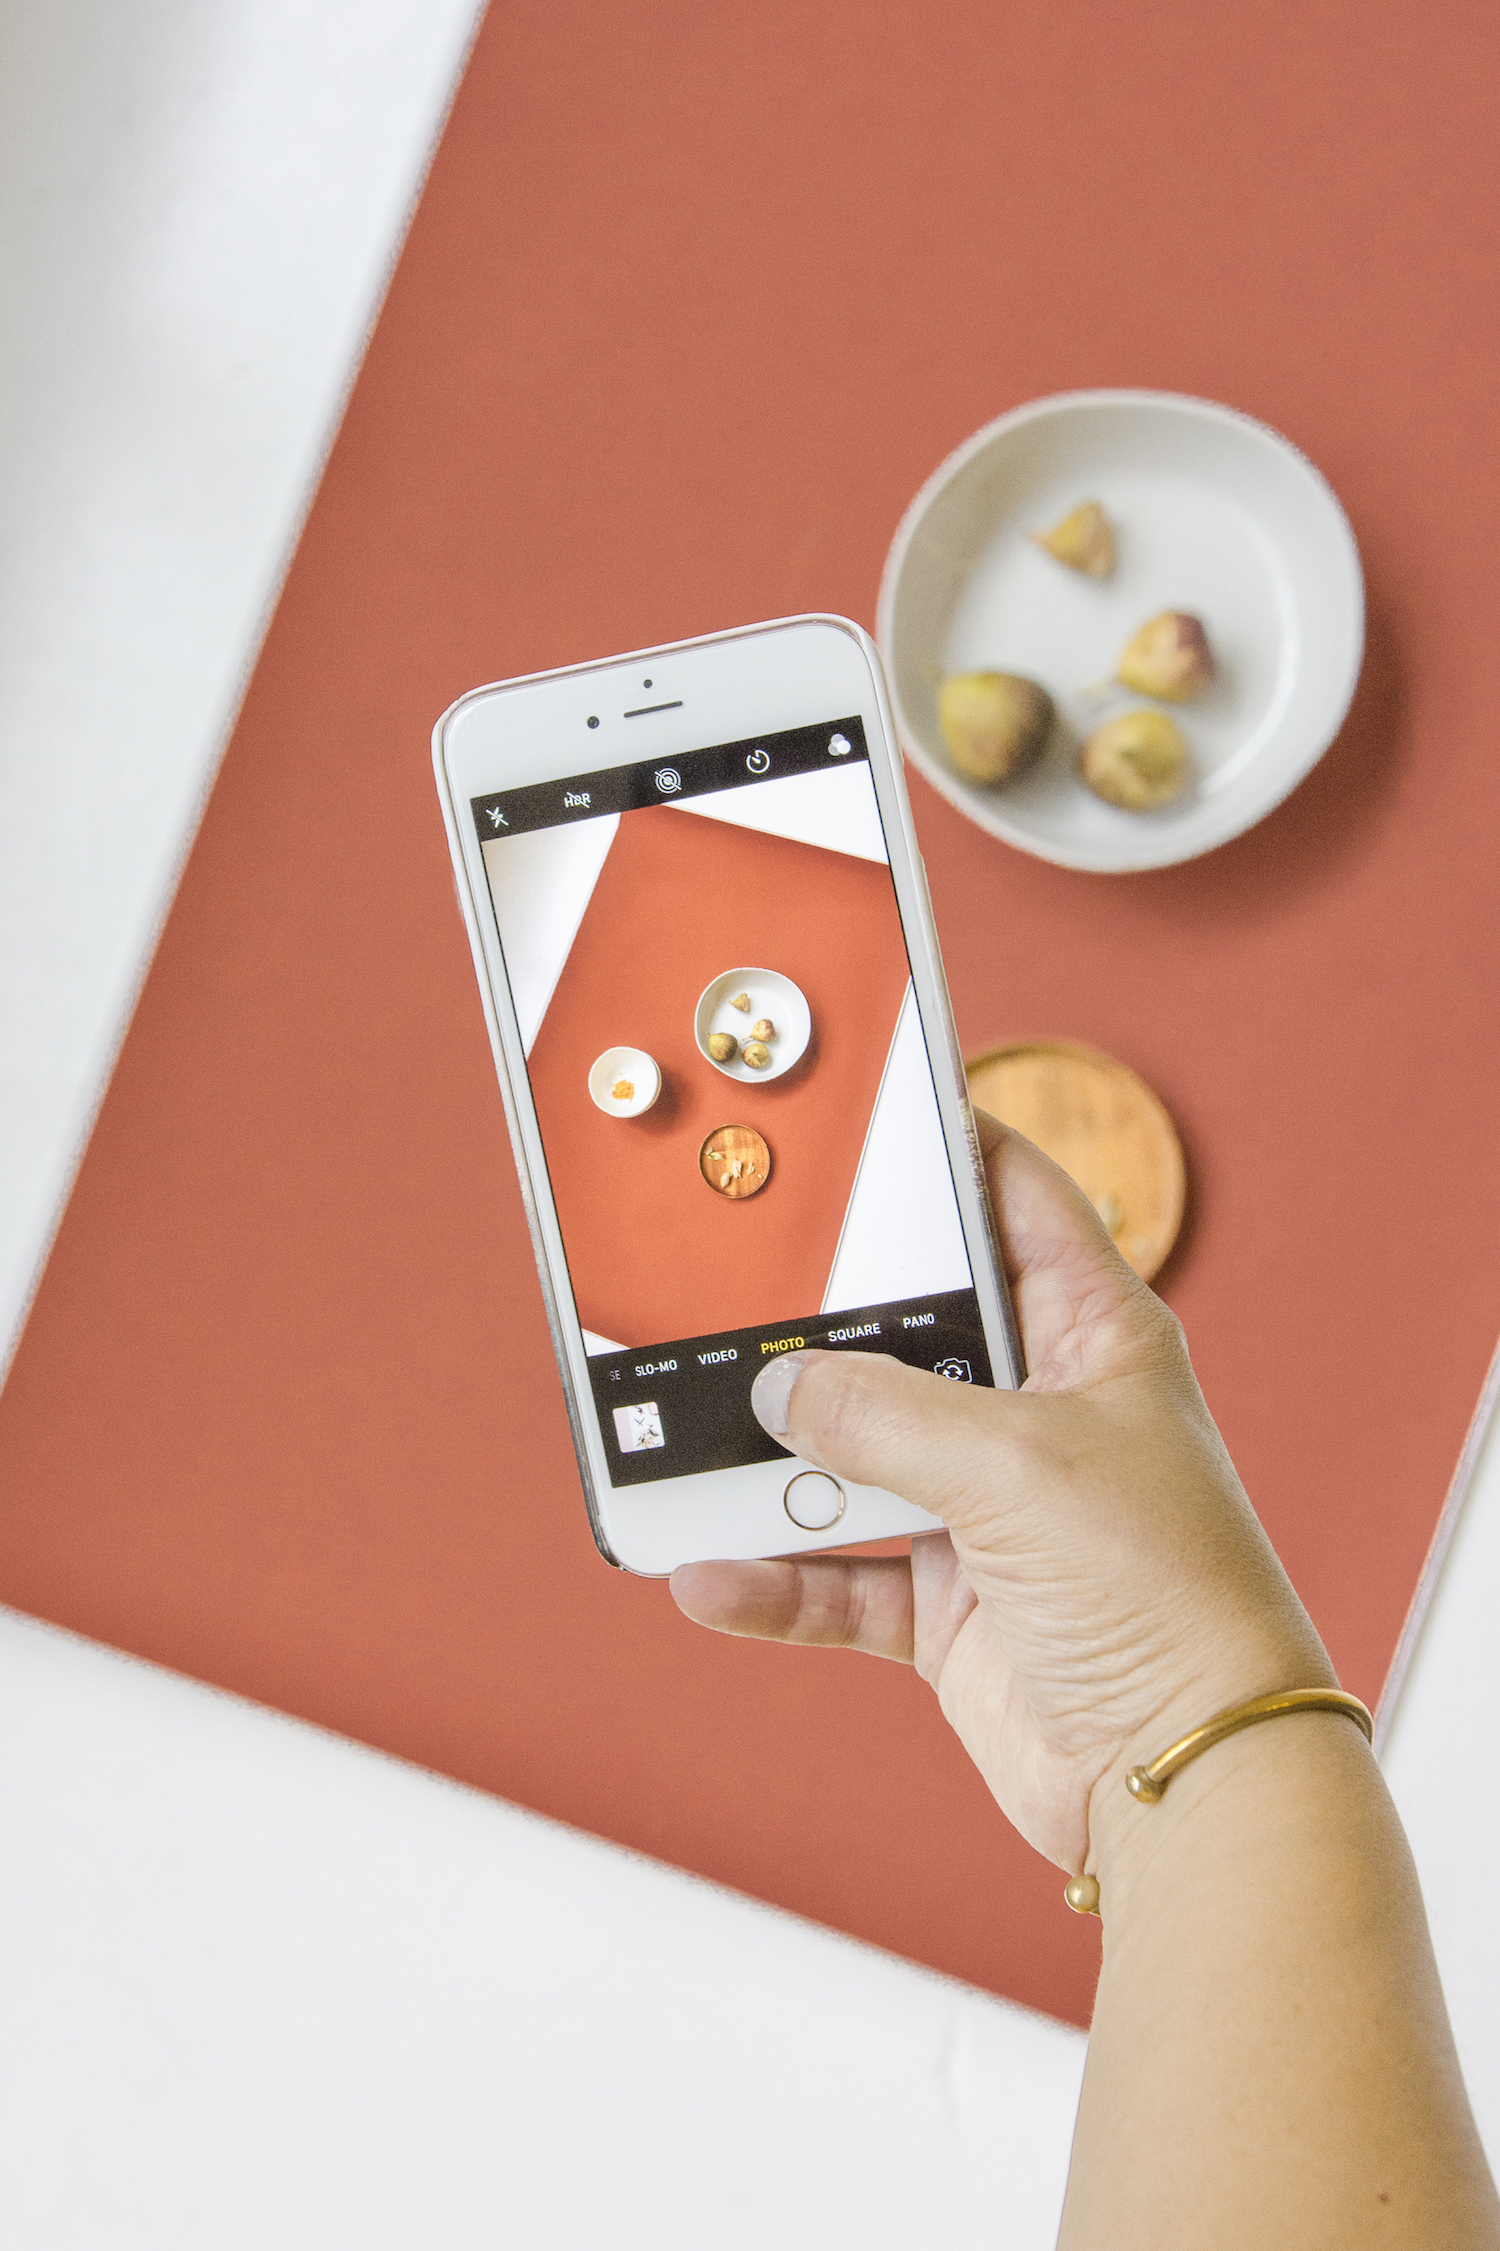 Taking picture of flatlay on phone